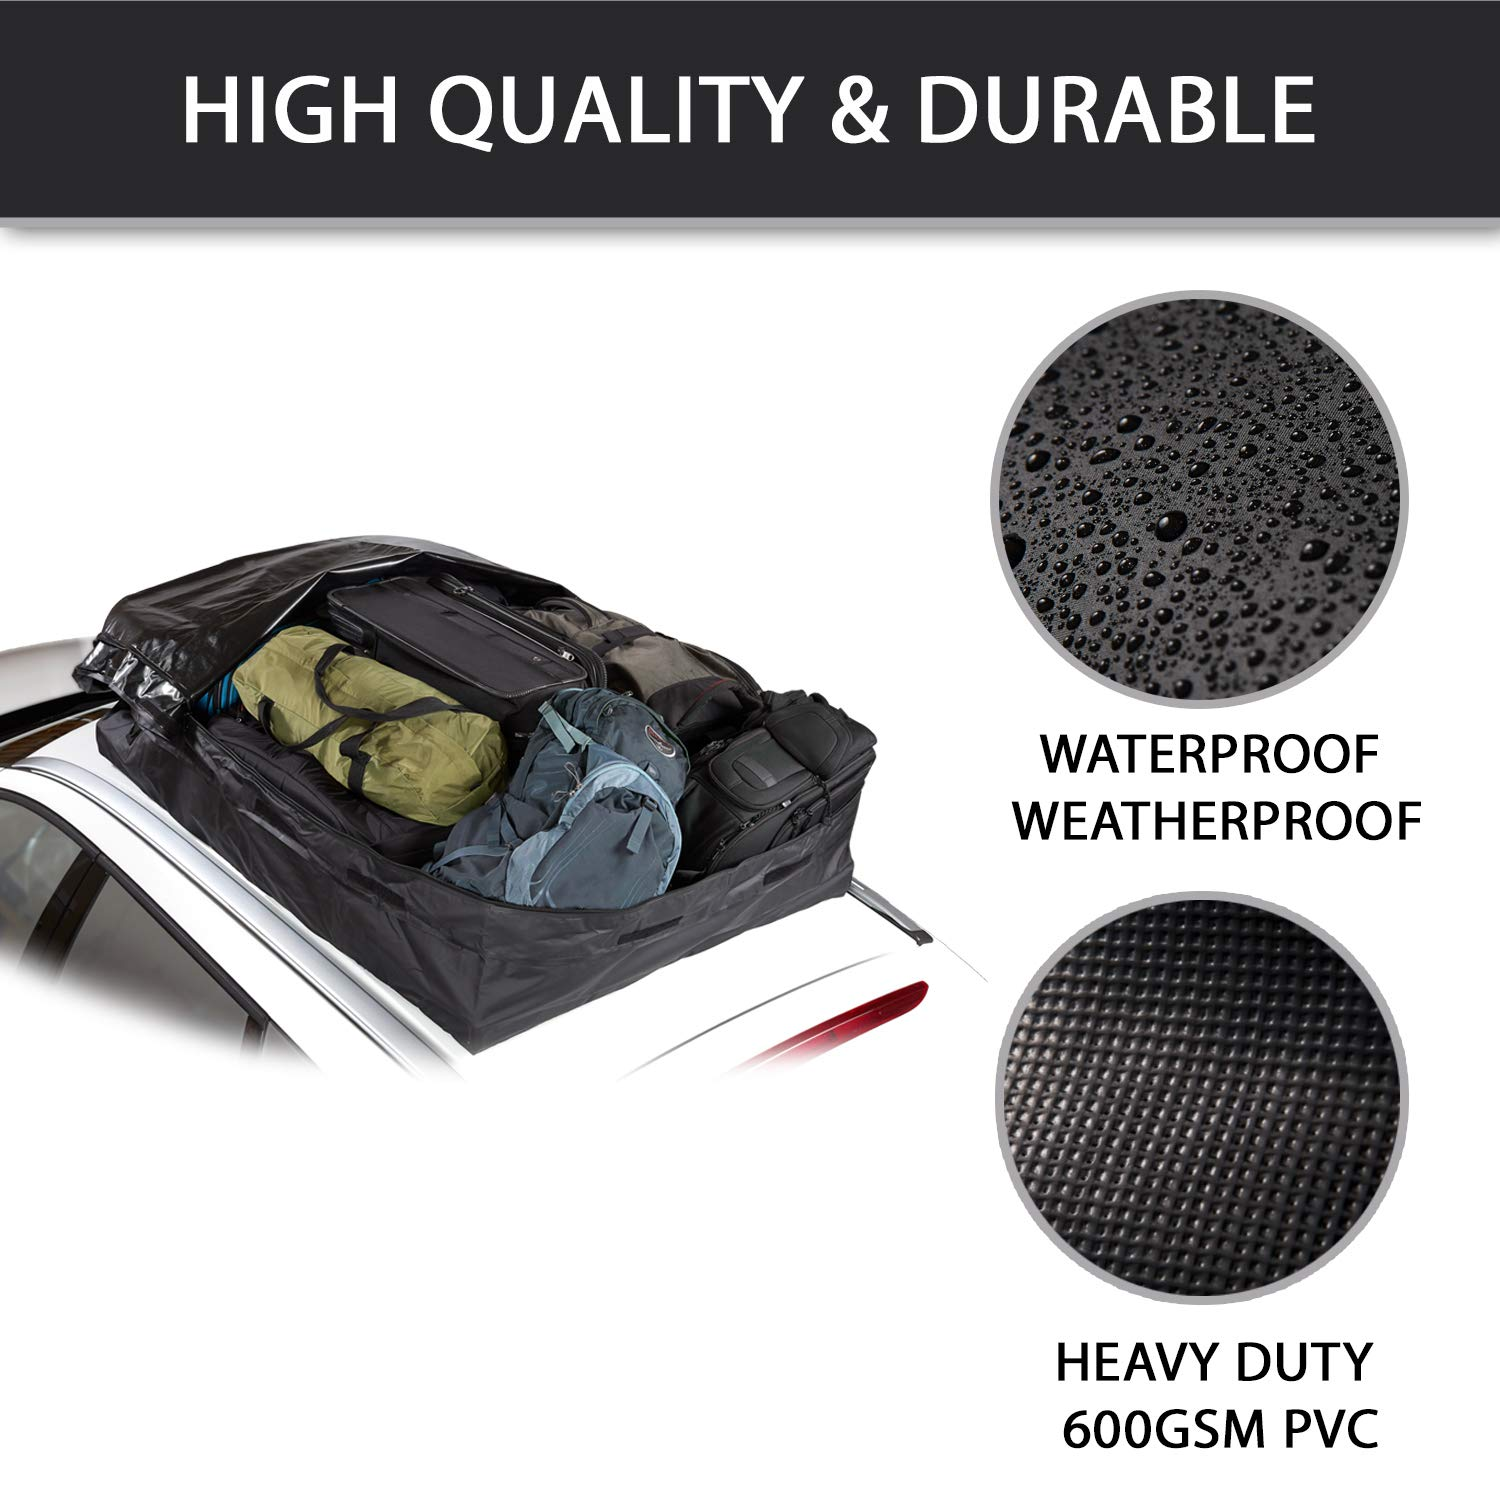 Lock Included 4350438923 20CFT - Use with or Without Racks Waterproof Fedmax Car Rooftop Carrier Roof Top Luggage Bag